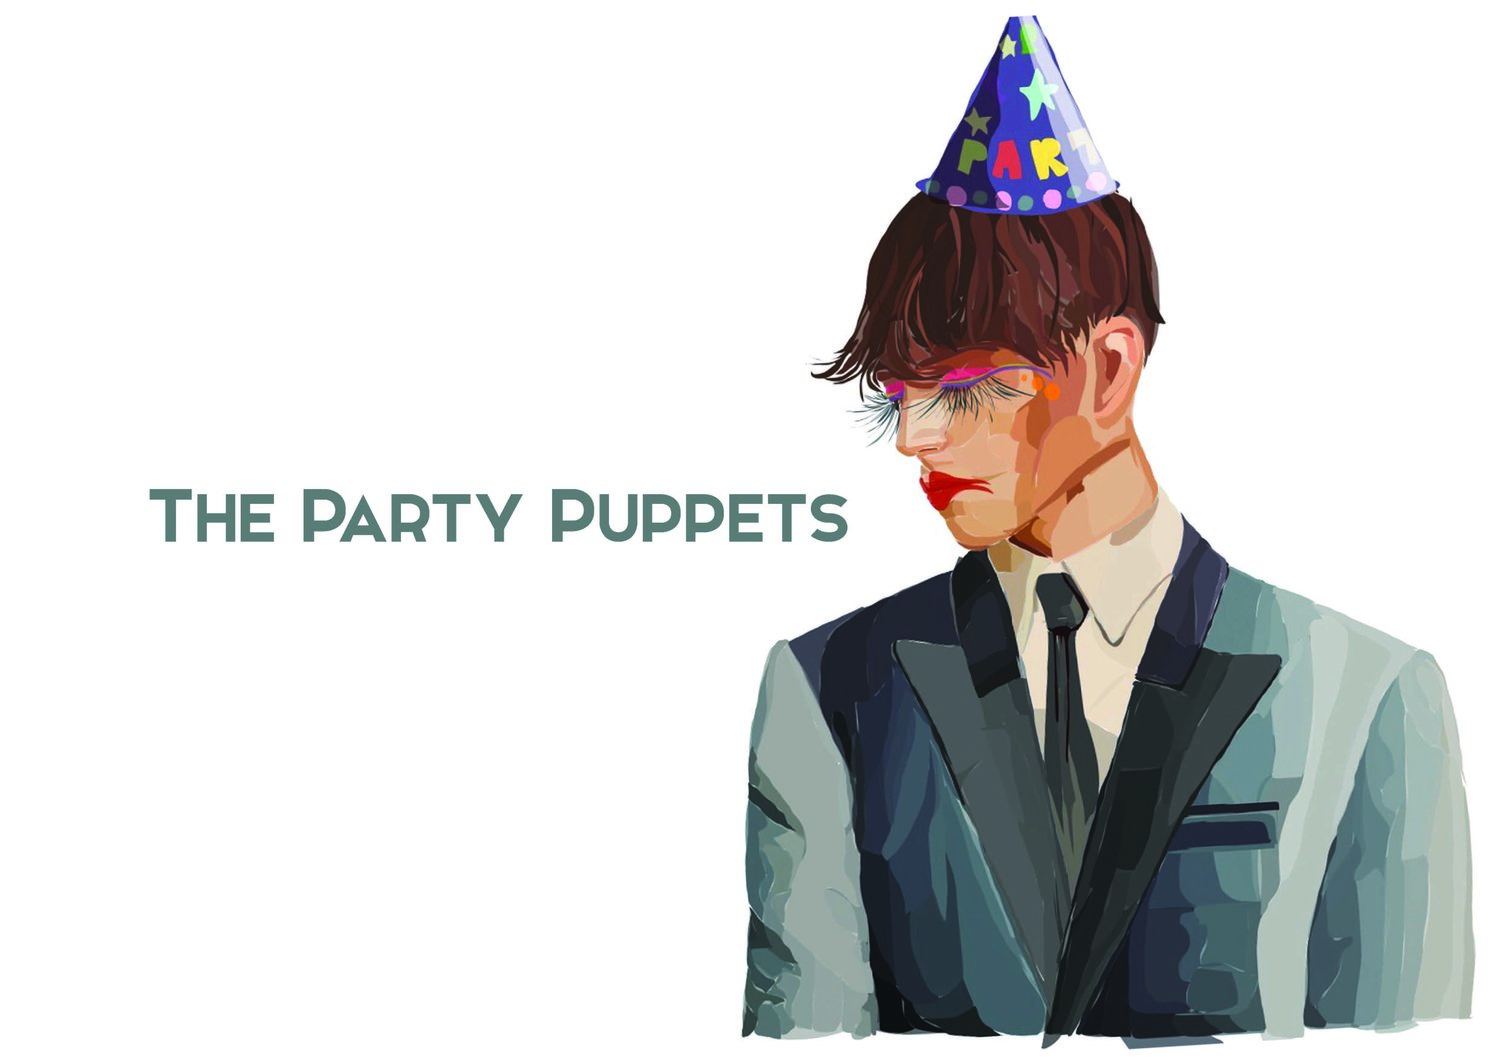 Party+Puppets+Illustration.jpg